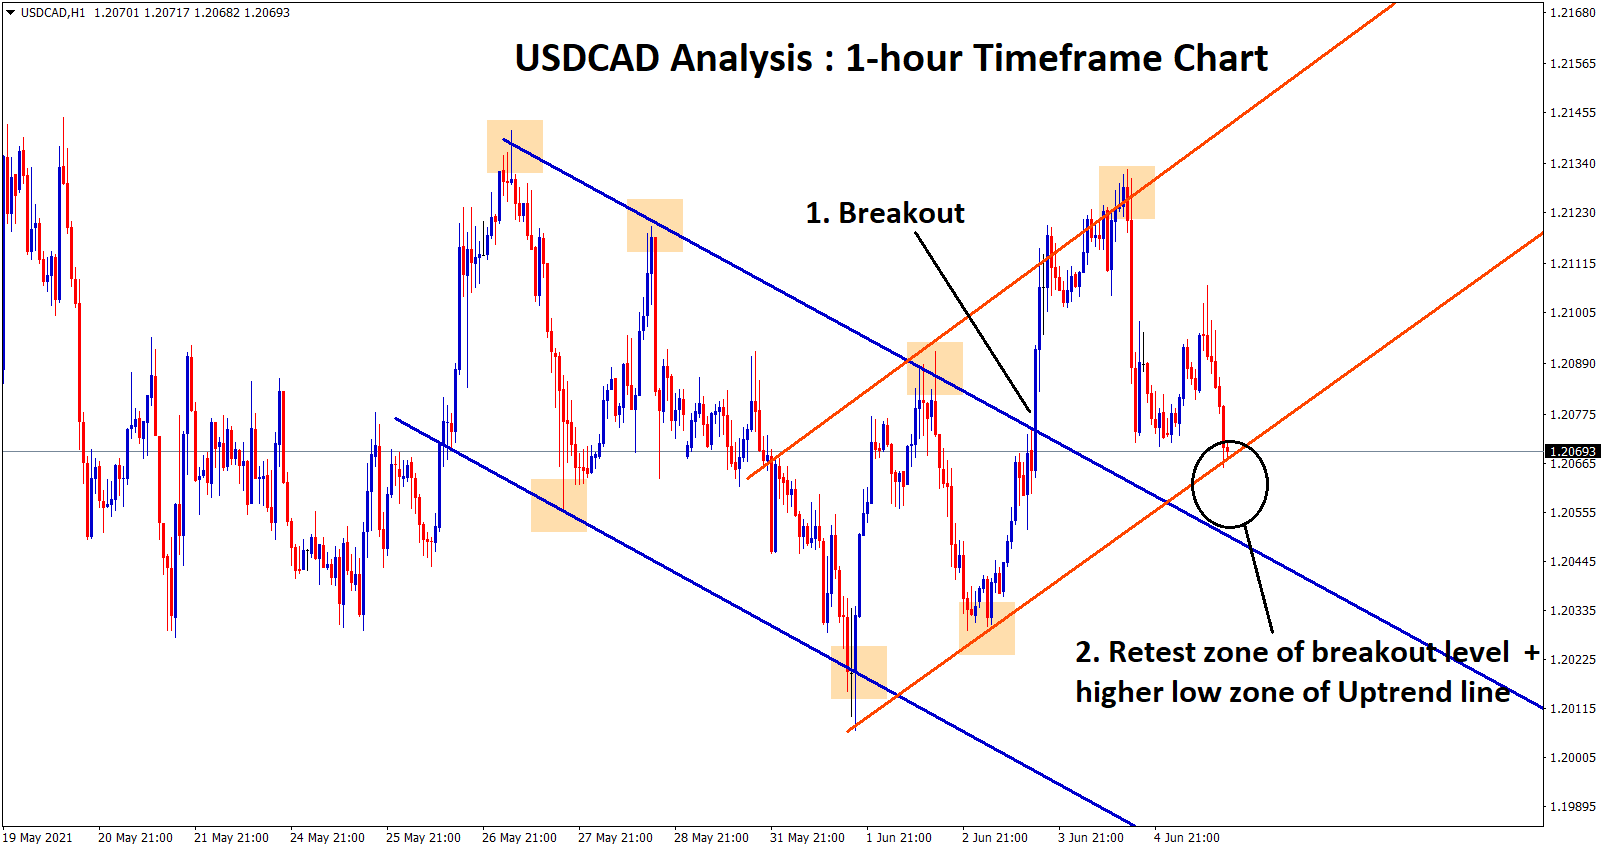 USDCAD hit the Retest zone of the broken downtrend line and higher low zone of the current uptrend line